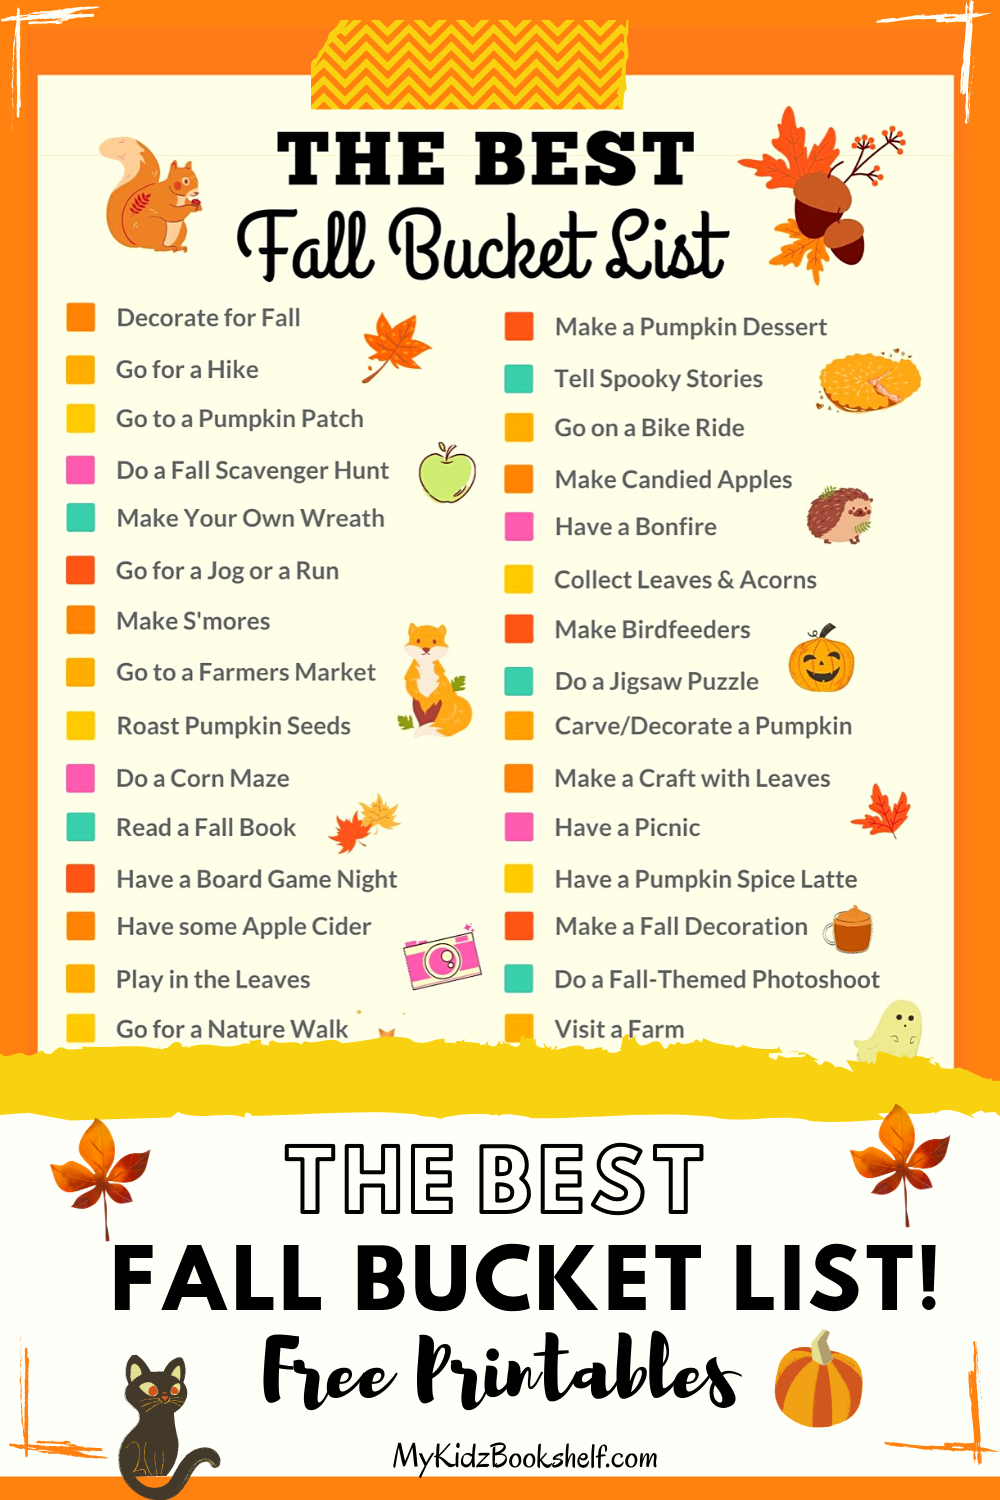 The Best Fall Bucket List free printable Pinterest pin